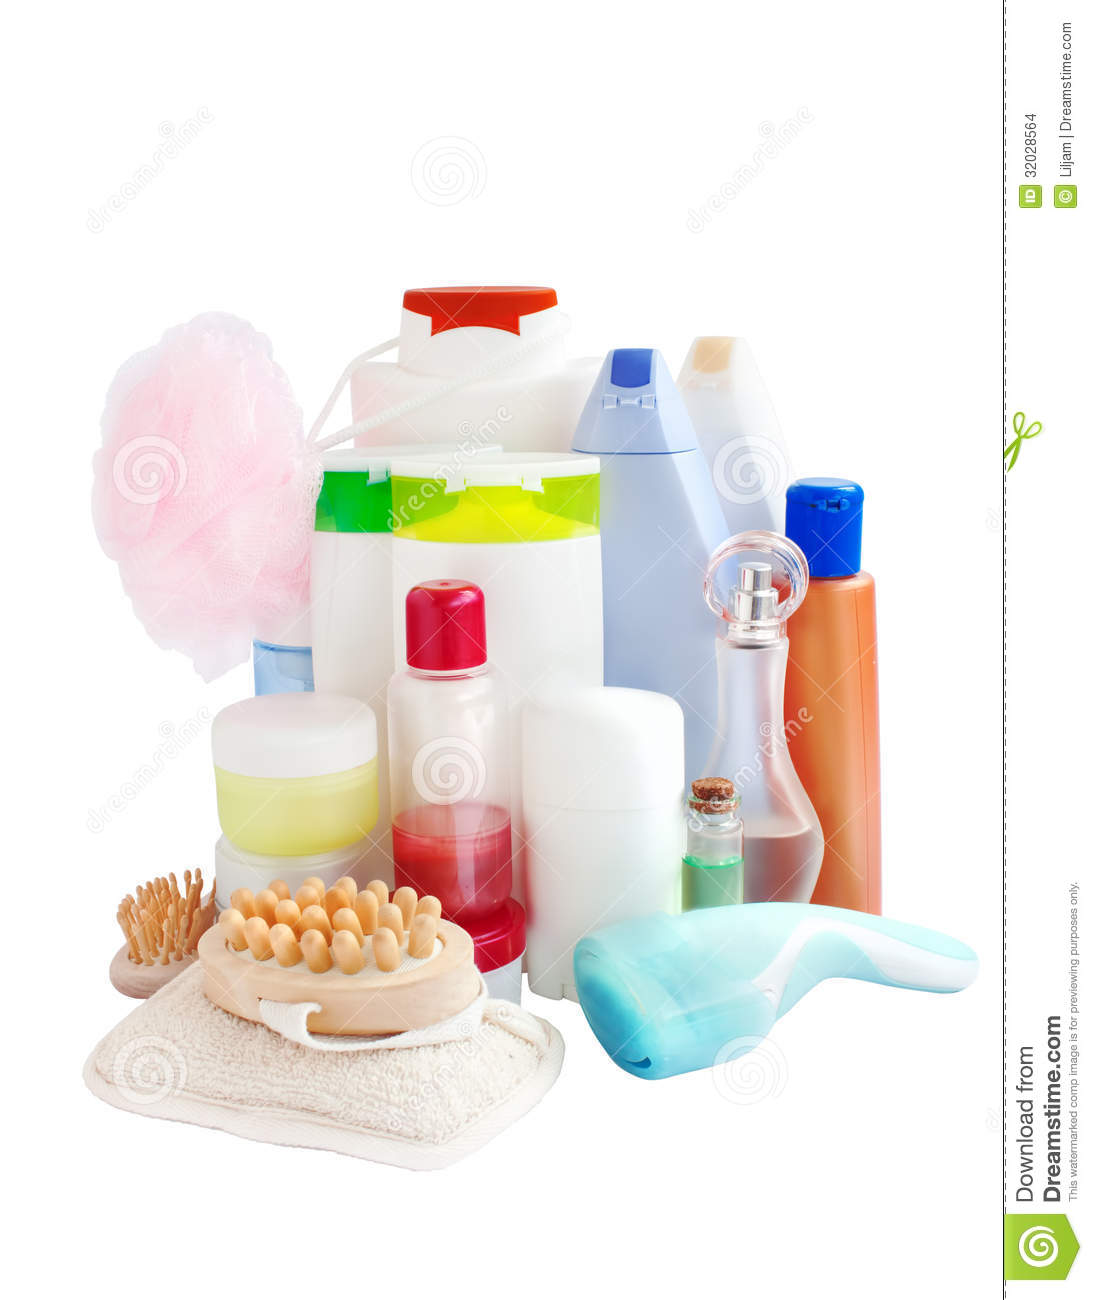 Download Care And Bathroom Products Stock Photo. Image Of Care   32028564